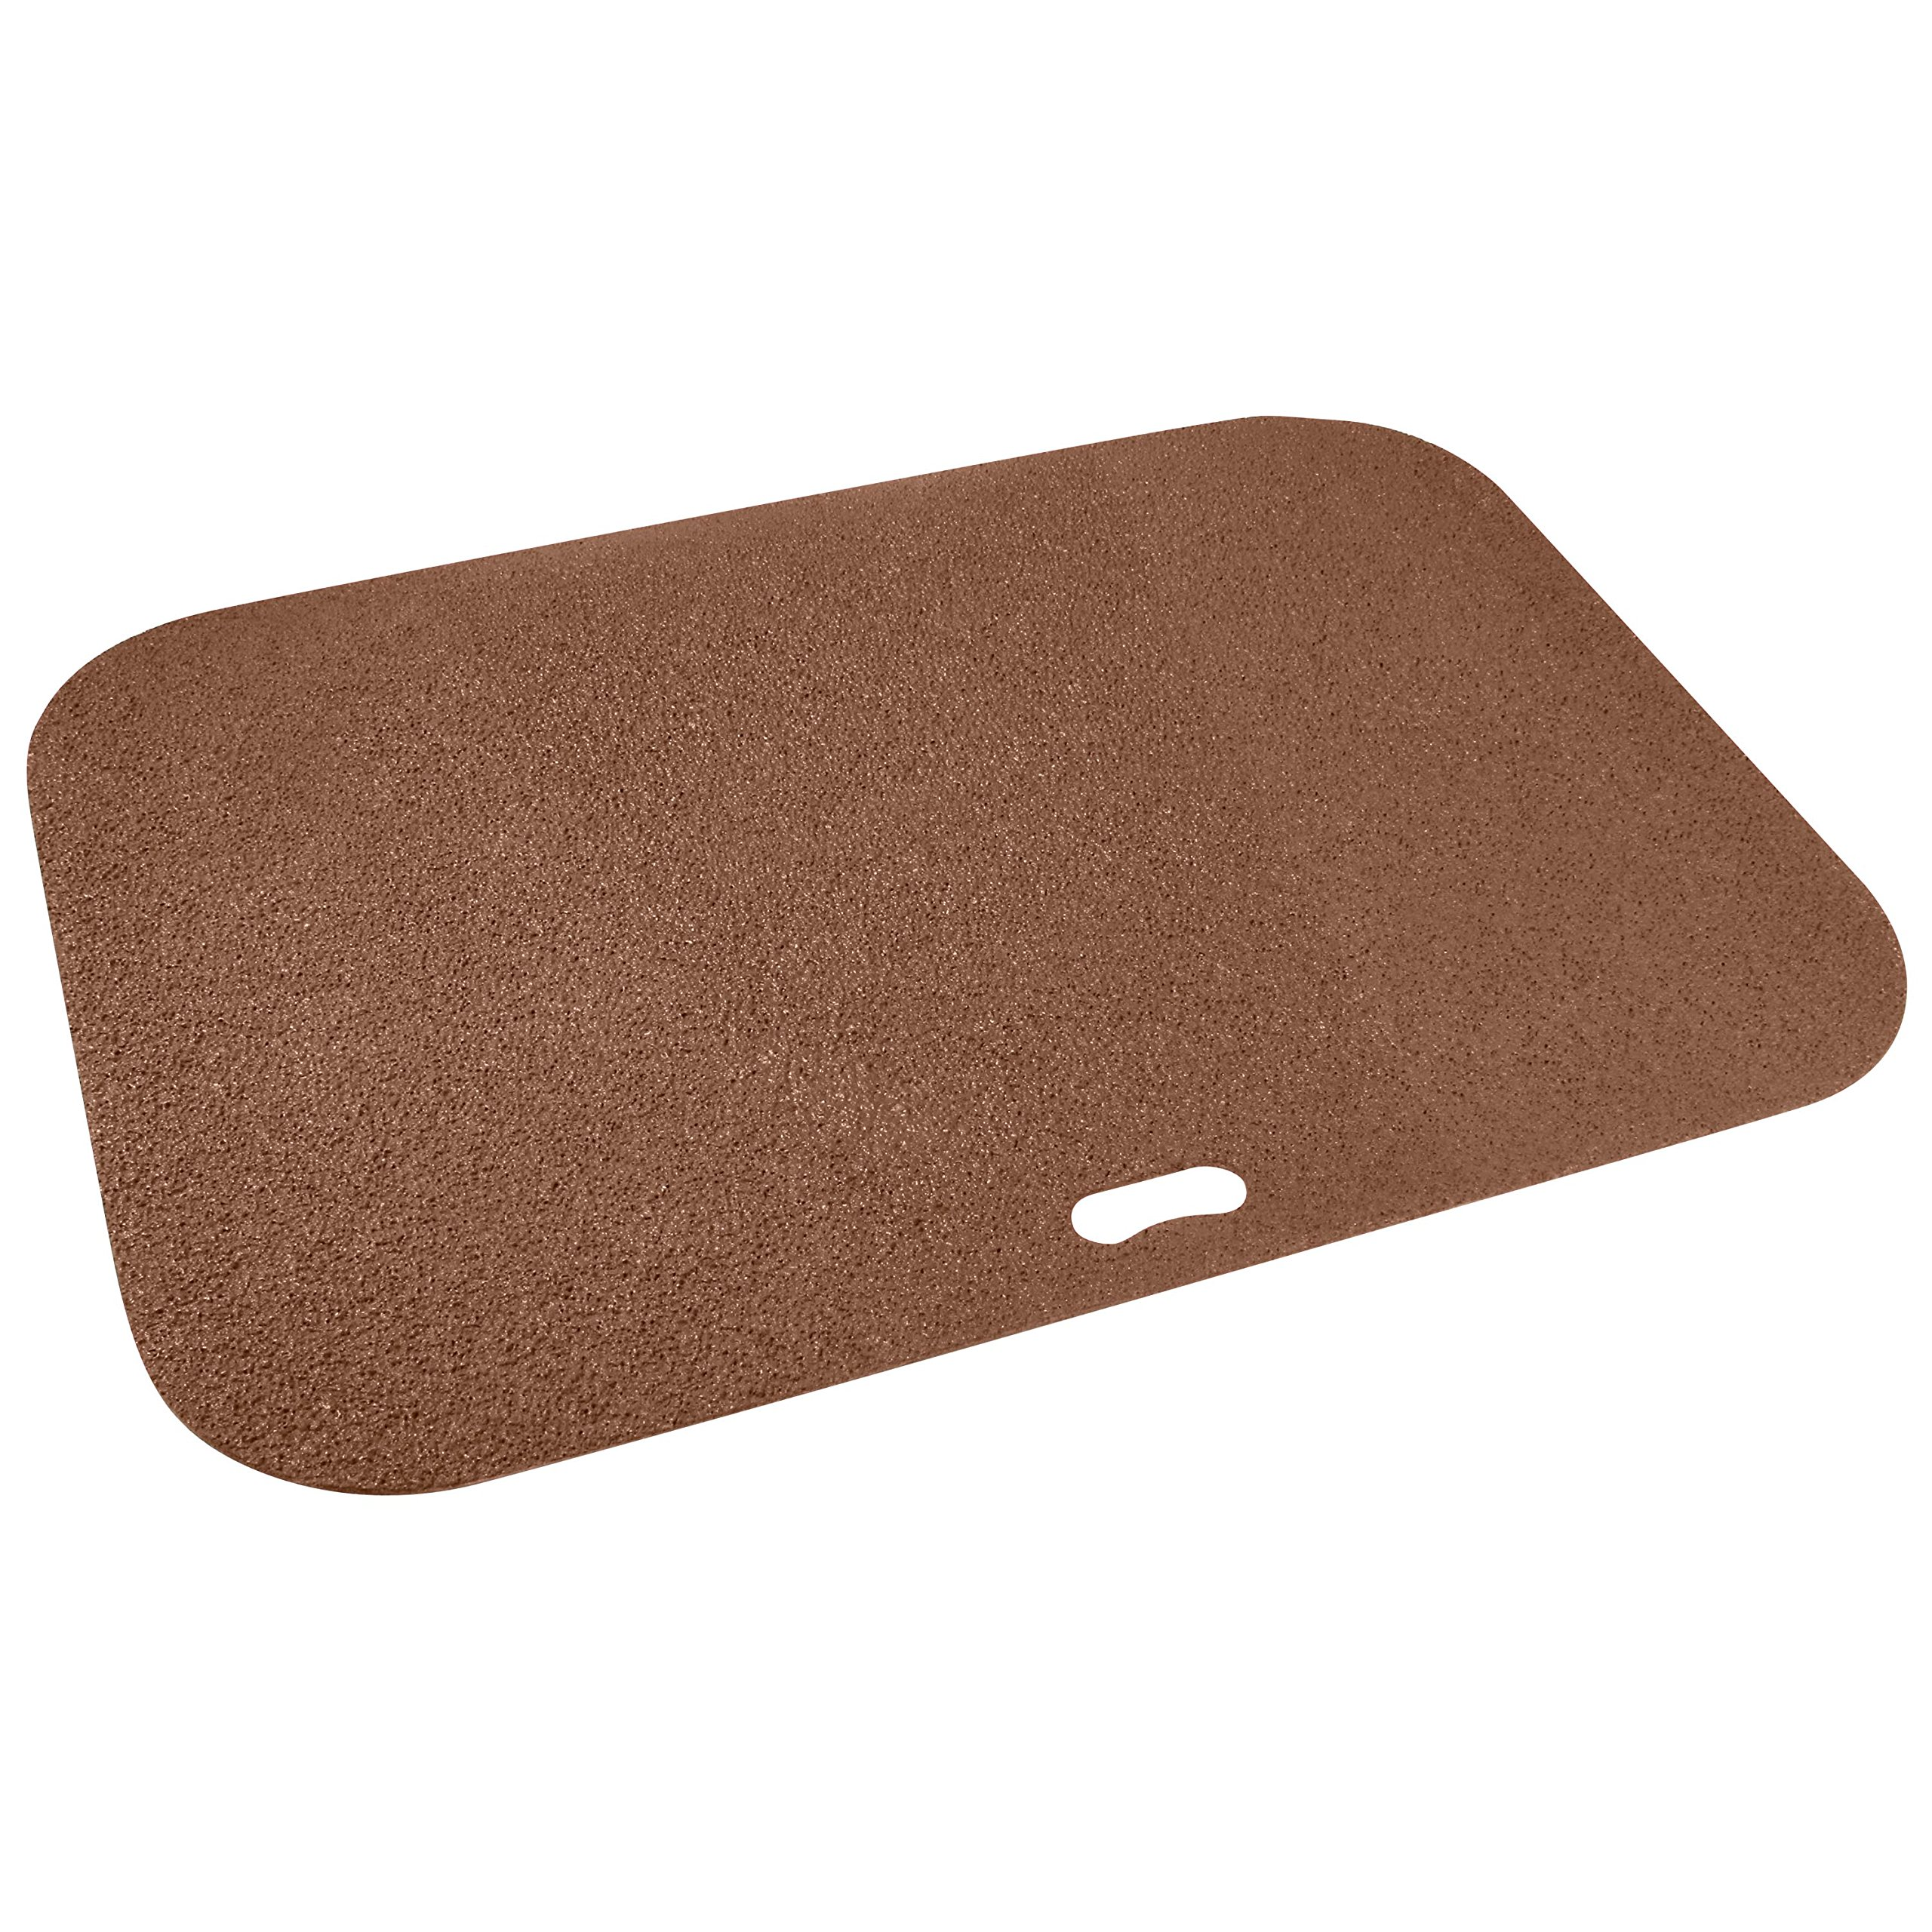 Diversitech Original Grill Mat - BBQ Floor Mat - Put Under Gas Grill, Fryer, Fire Pit - Protects Decks and Patios - 30 x 42 Inches - Rectangle - Brown by Diversitech Original Grill Mat